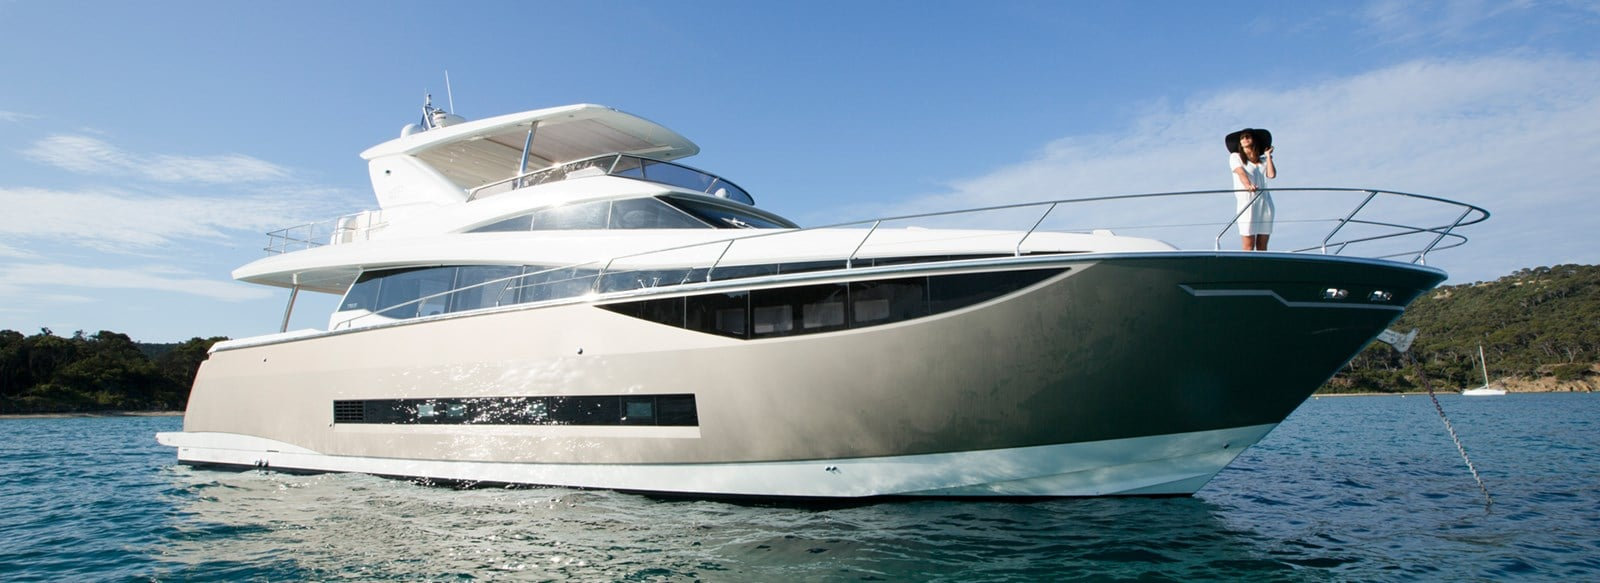 new prestige 750 yacht for sale